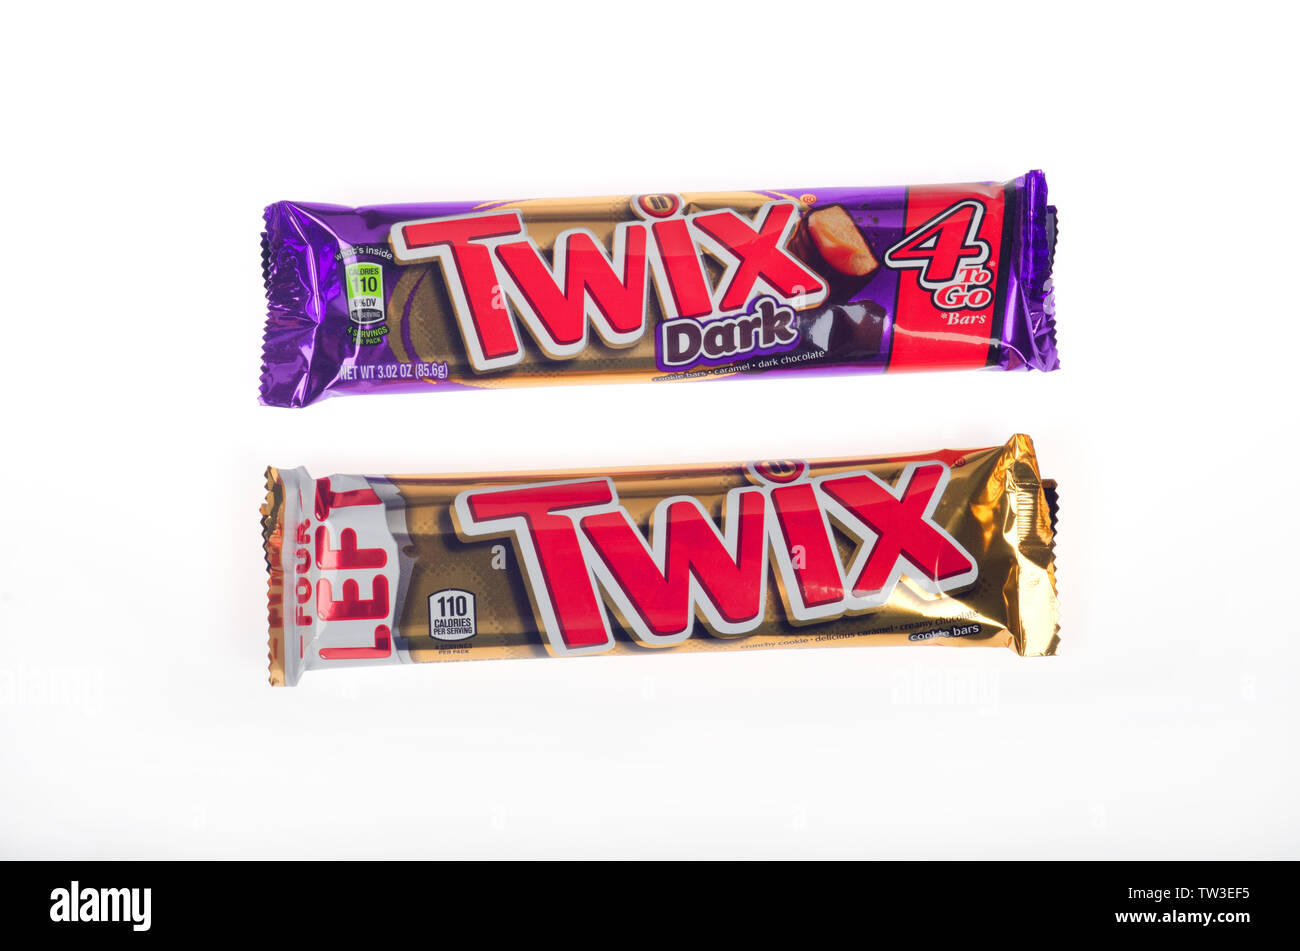 Twix and Twix Dark Chocolate 4 pack candy bars in wrapper made by Mars Wrigley isolated - Stock Image